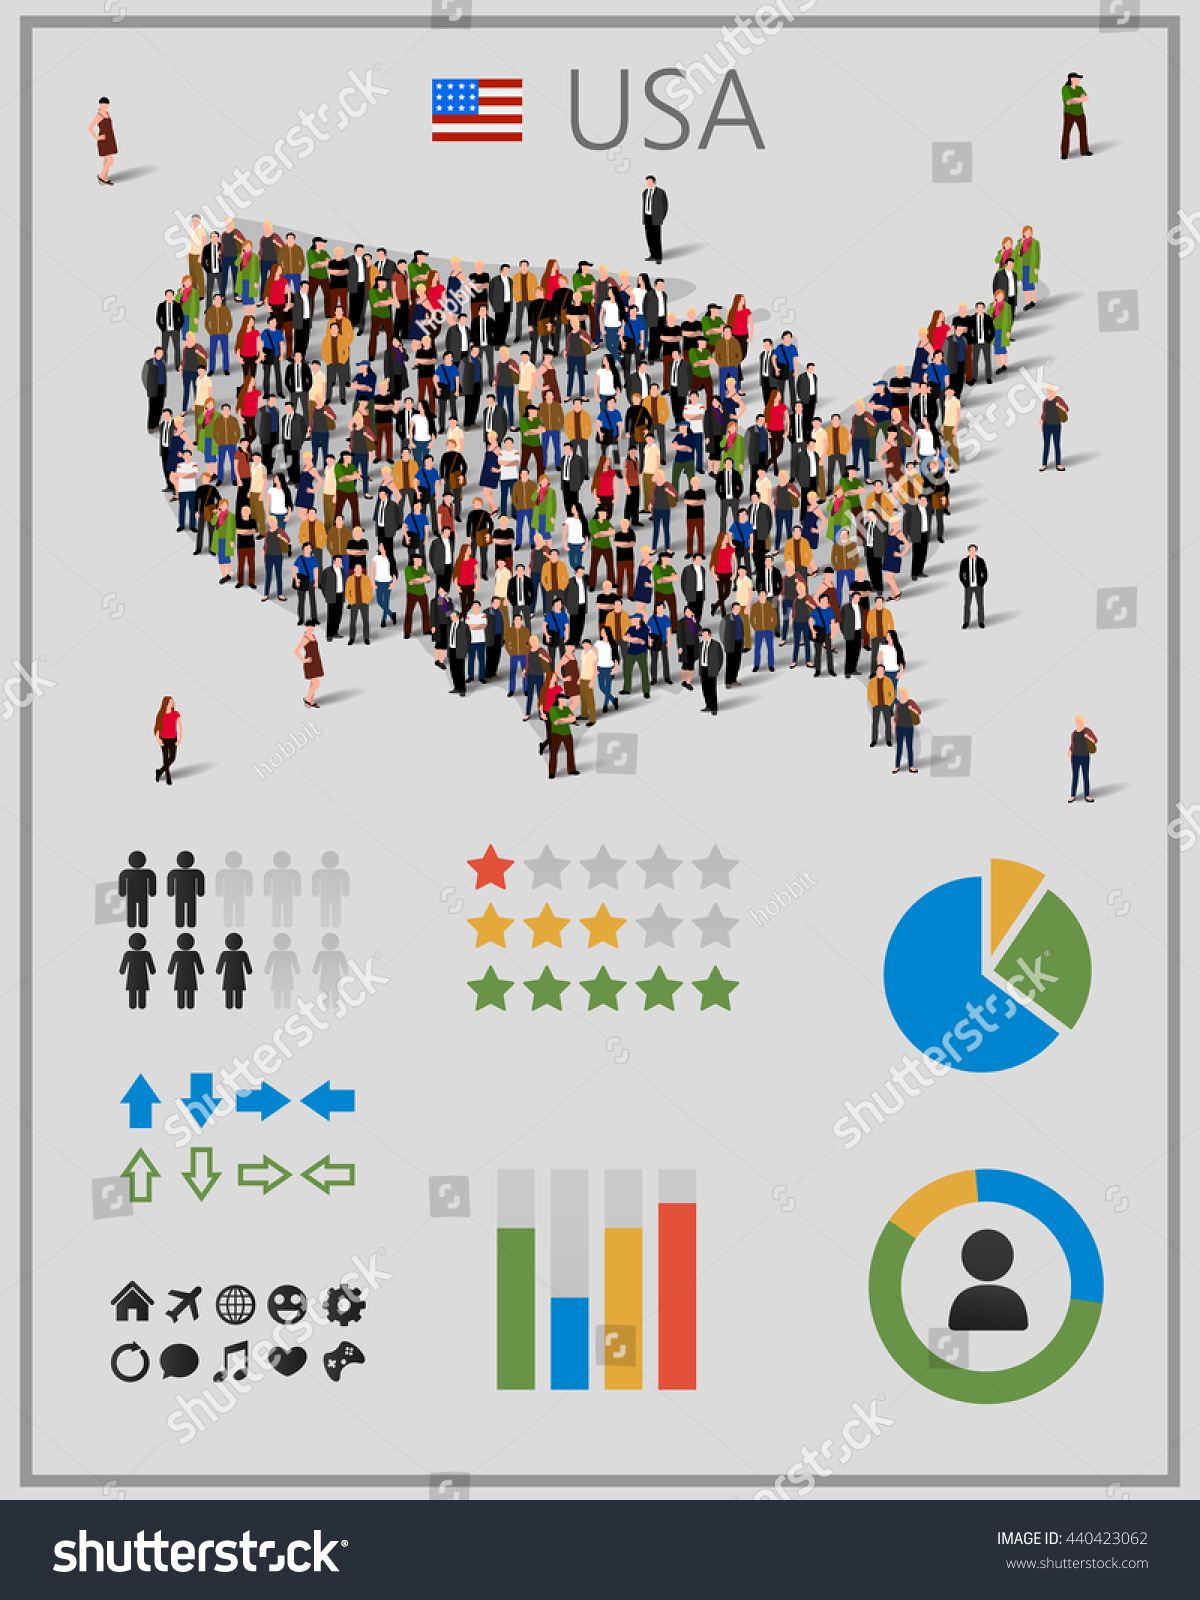 Large Group People United States America Stock Vector - Large image map of us vector